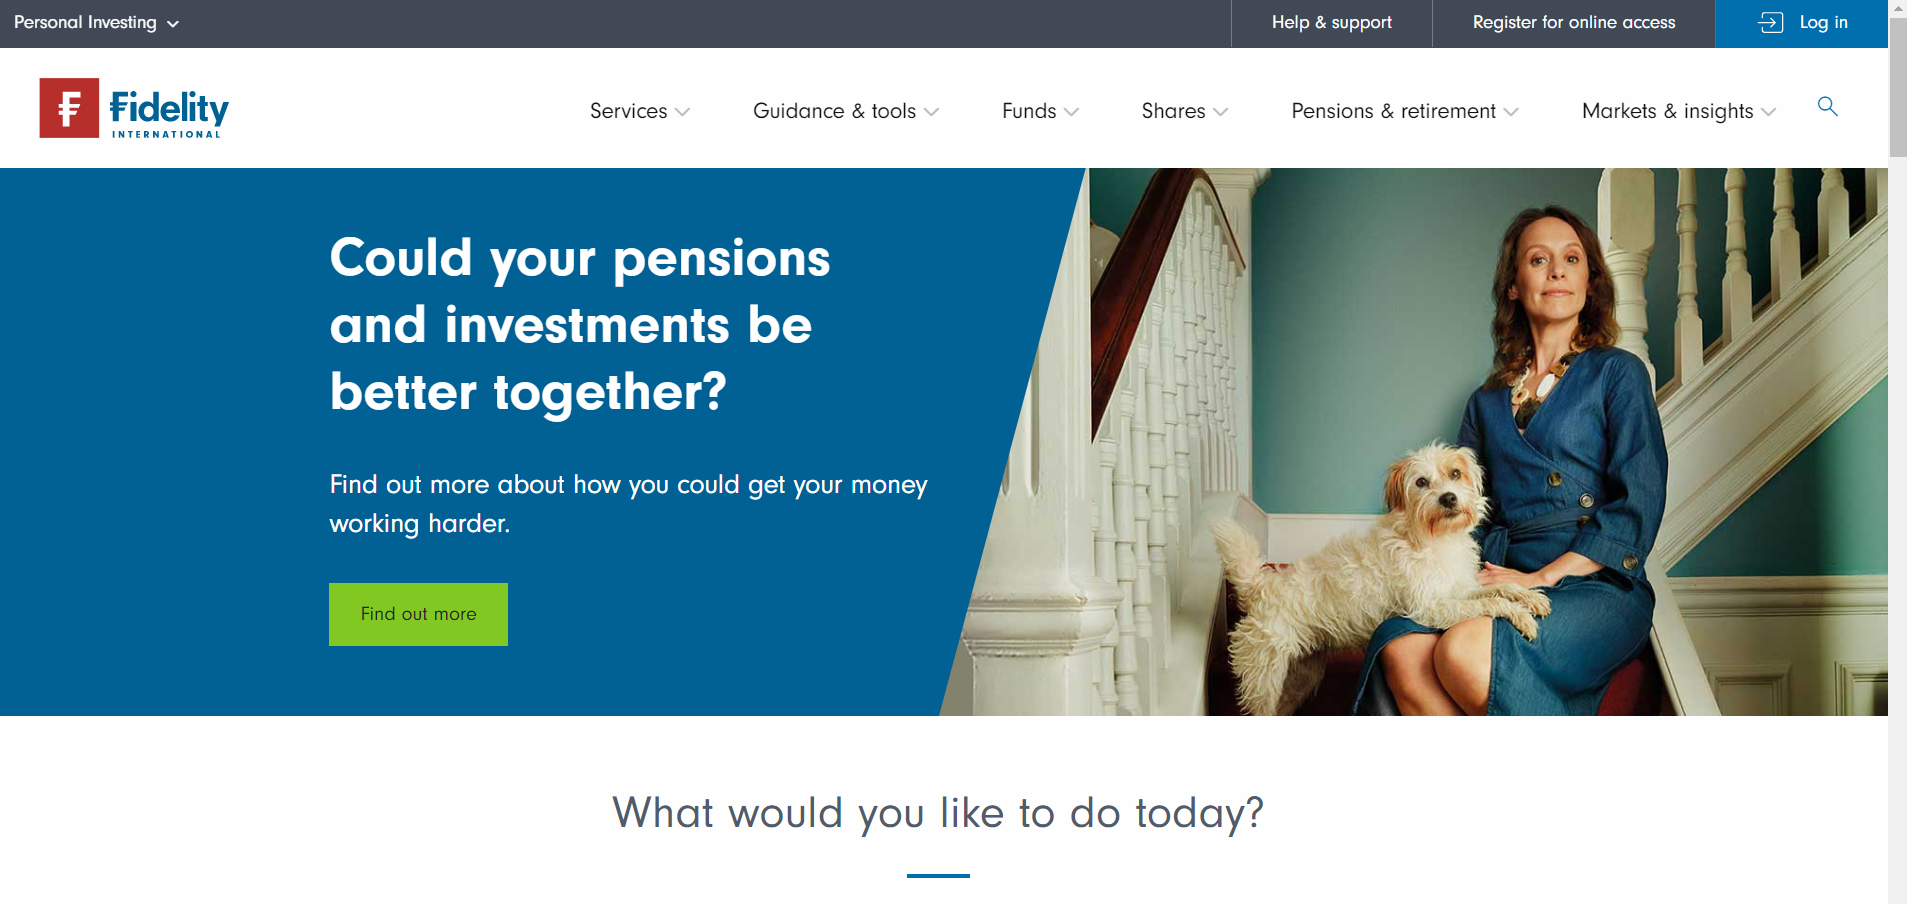 This is the homepage of fidelity